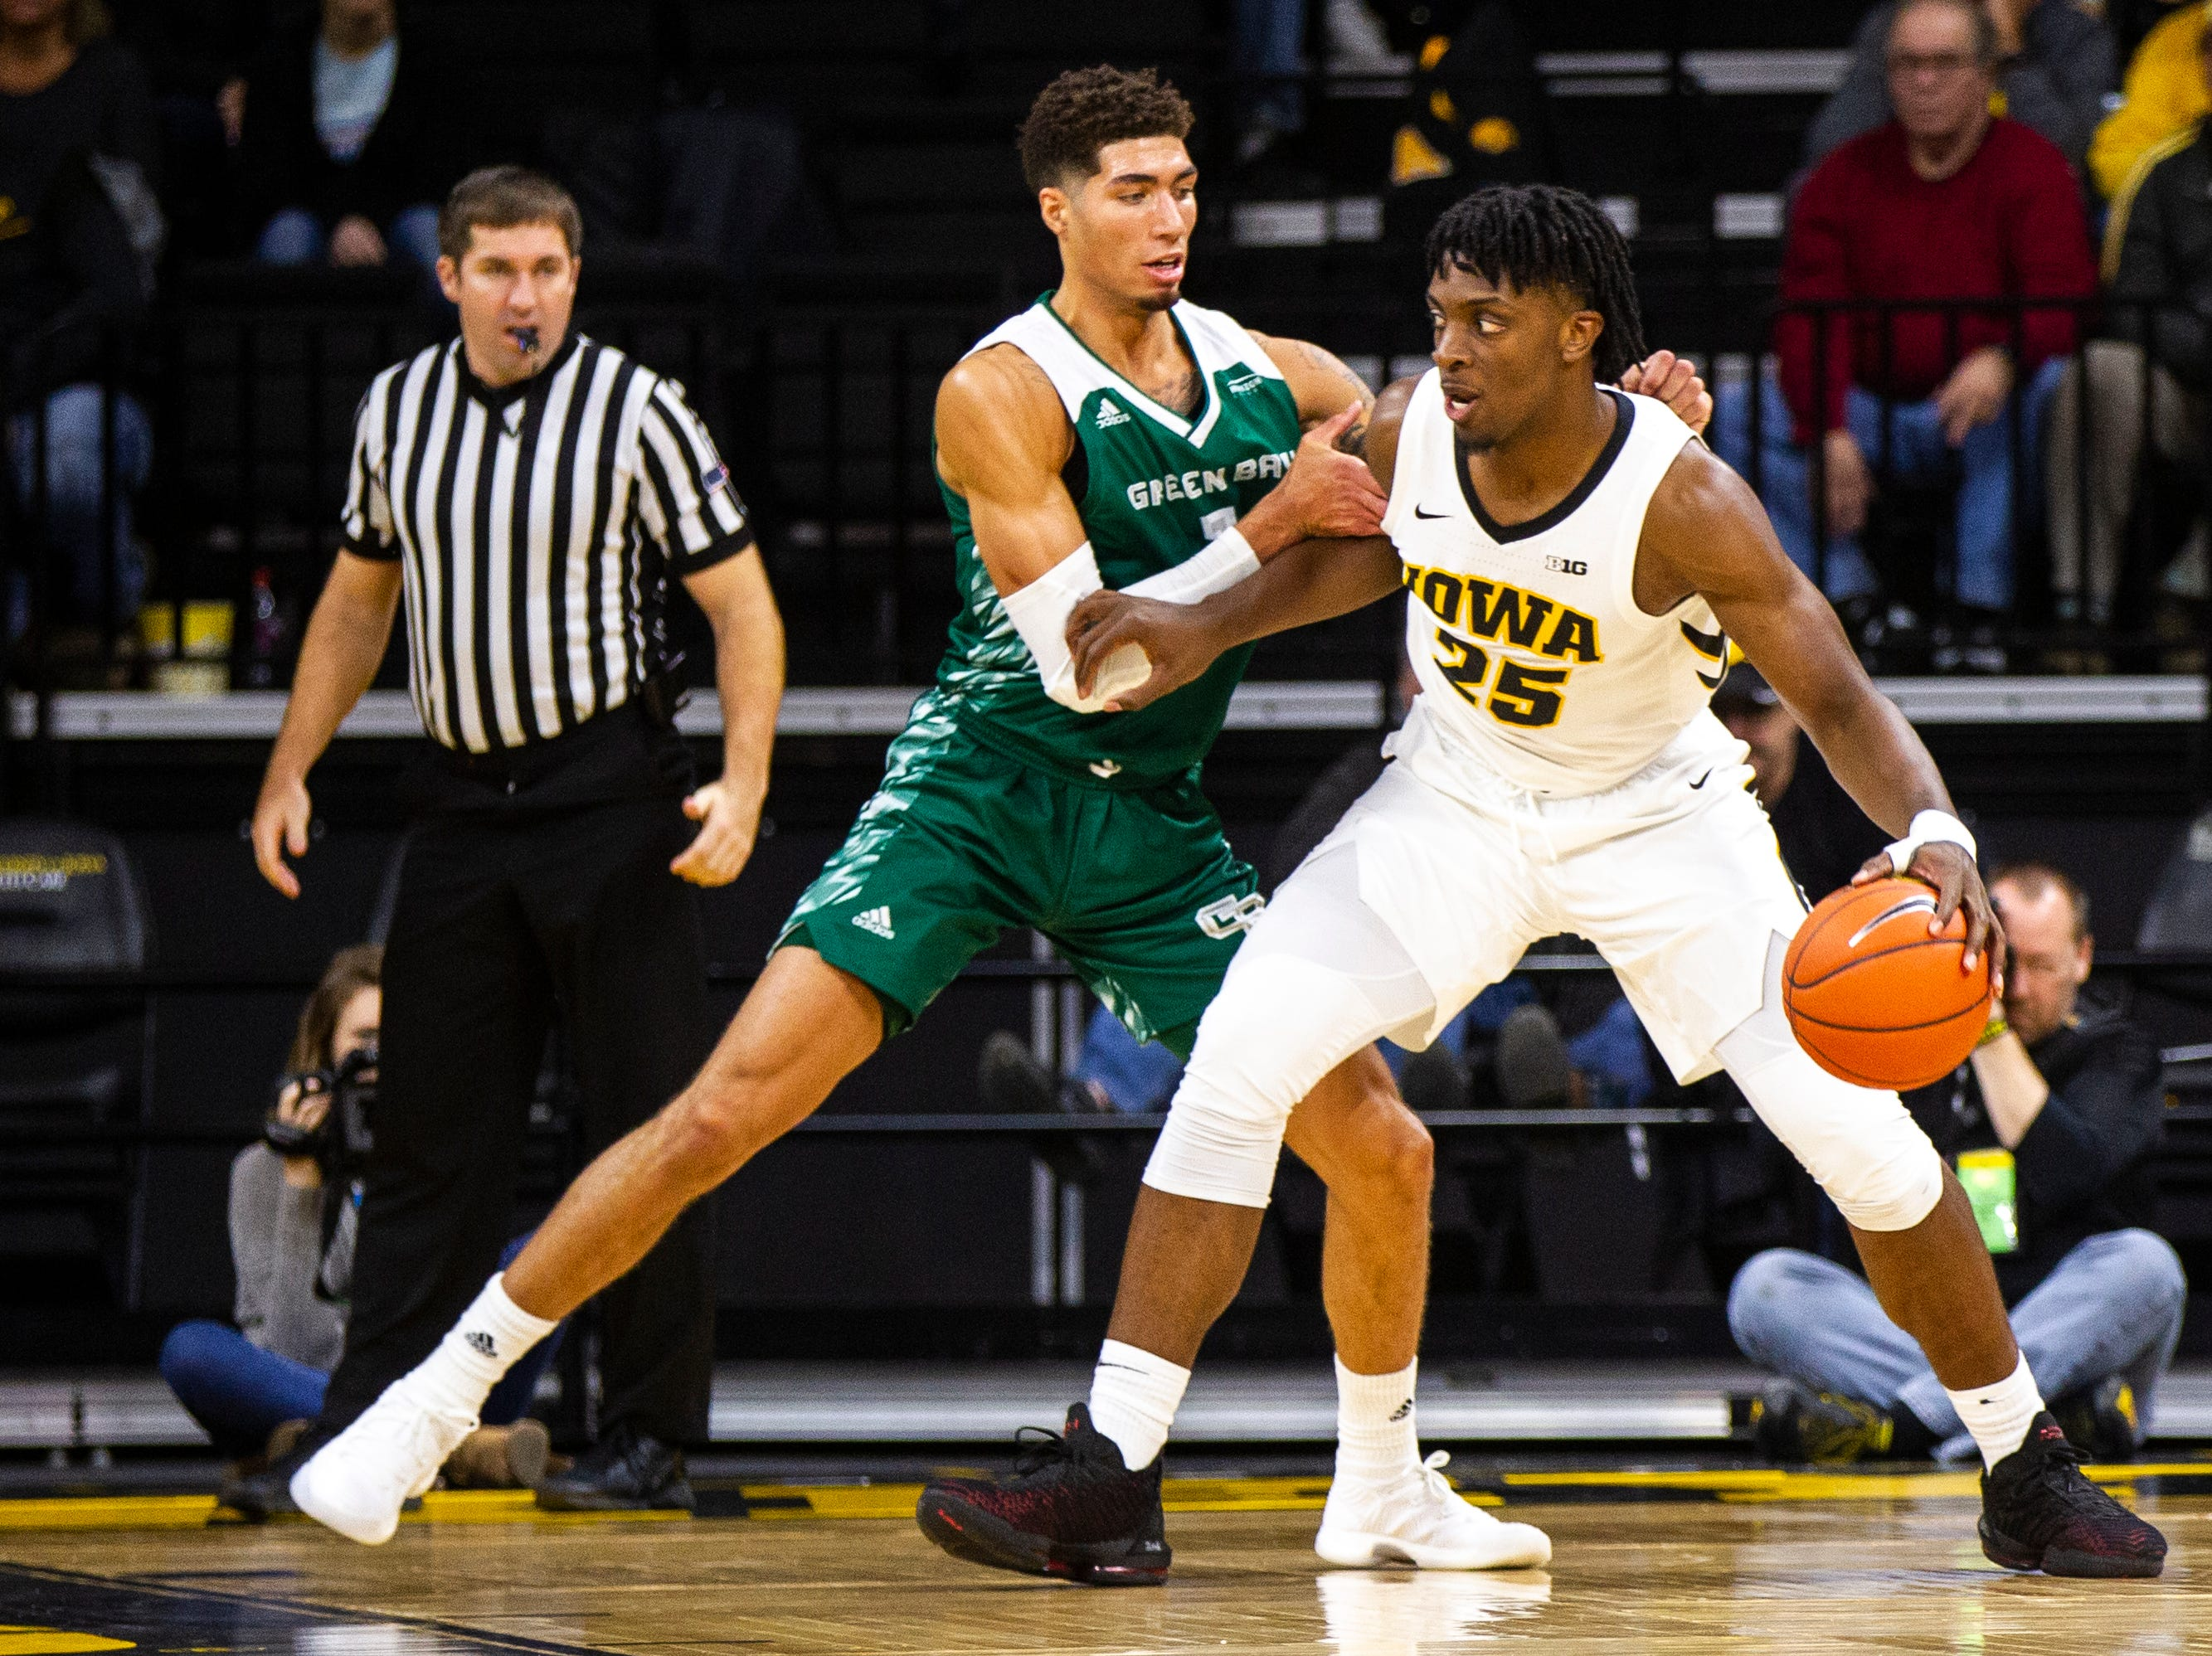 Iowa forward Tyler Cook (25) drives while being guarded by Green Bay guard Sandy Cohen III (1) during an NCAA men's basketball game in the 2K Empire Classic on Sunday, Nov. 11, 2018, at Carver-Hawkeye Arena in Iowa City.